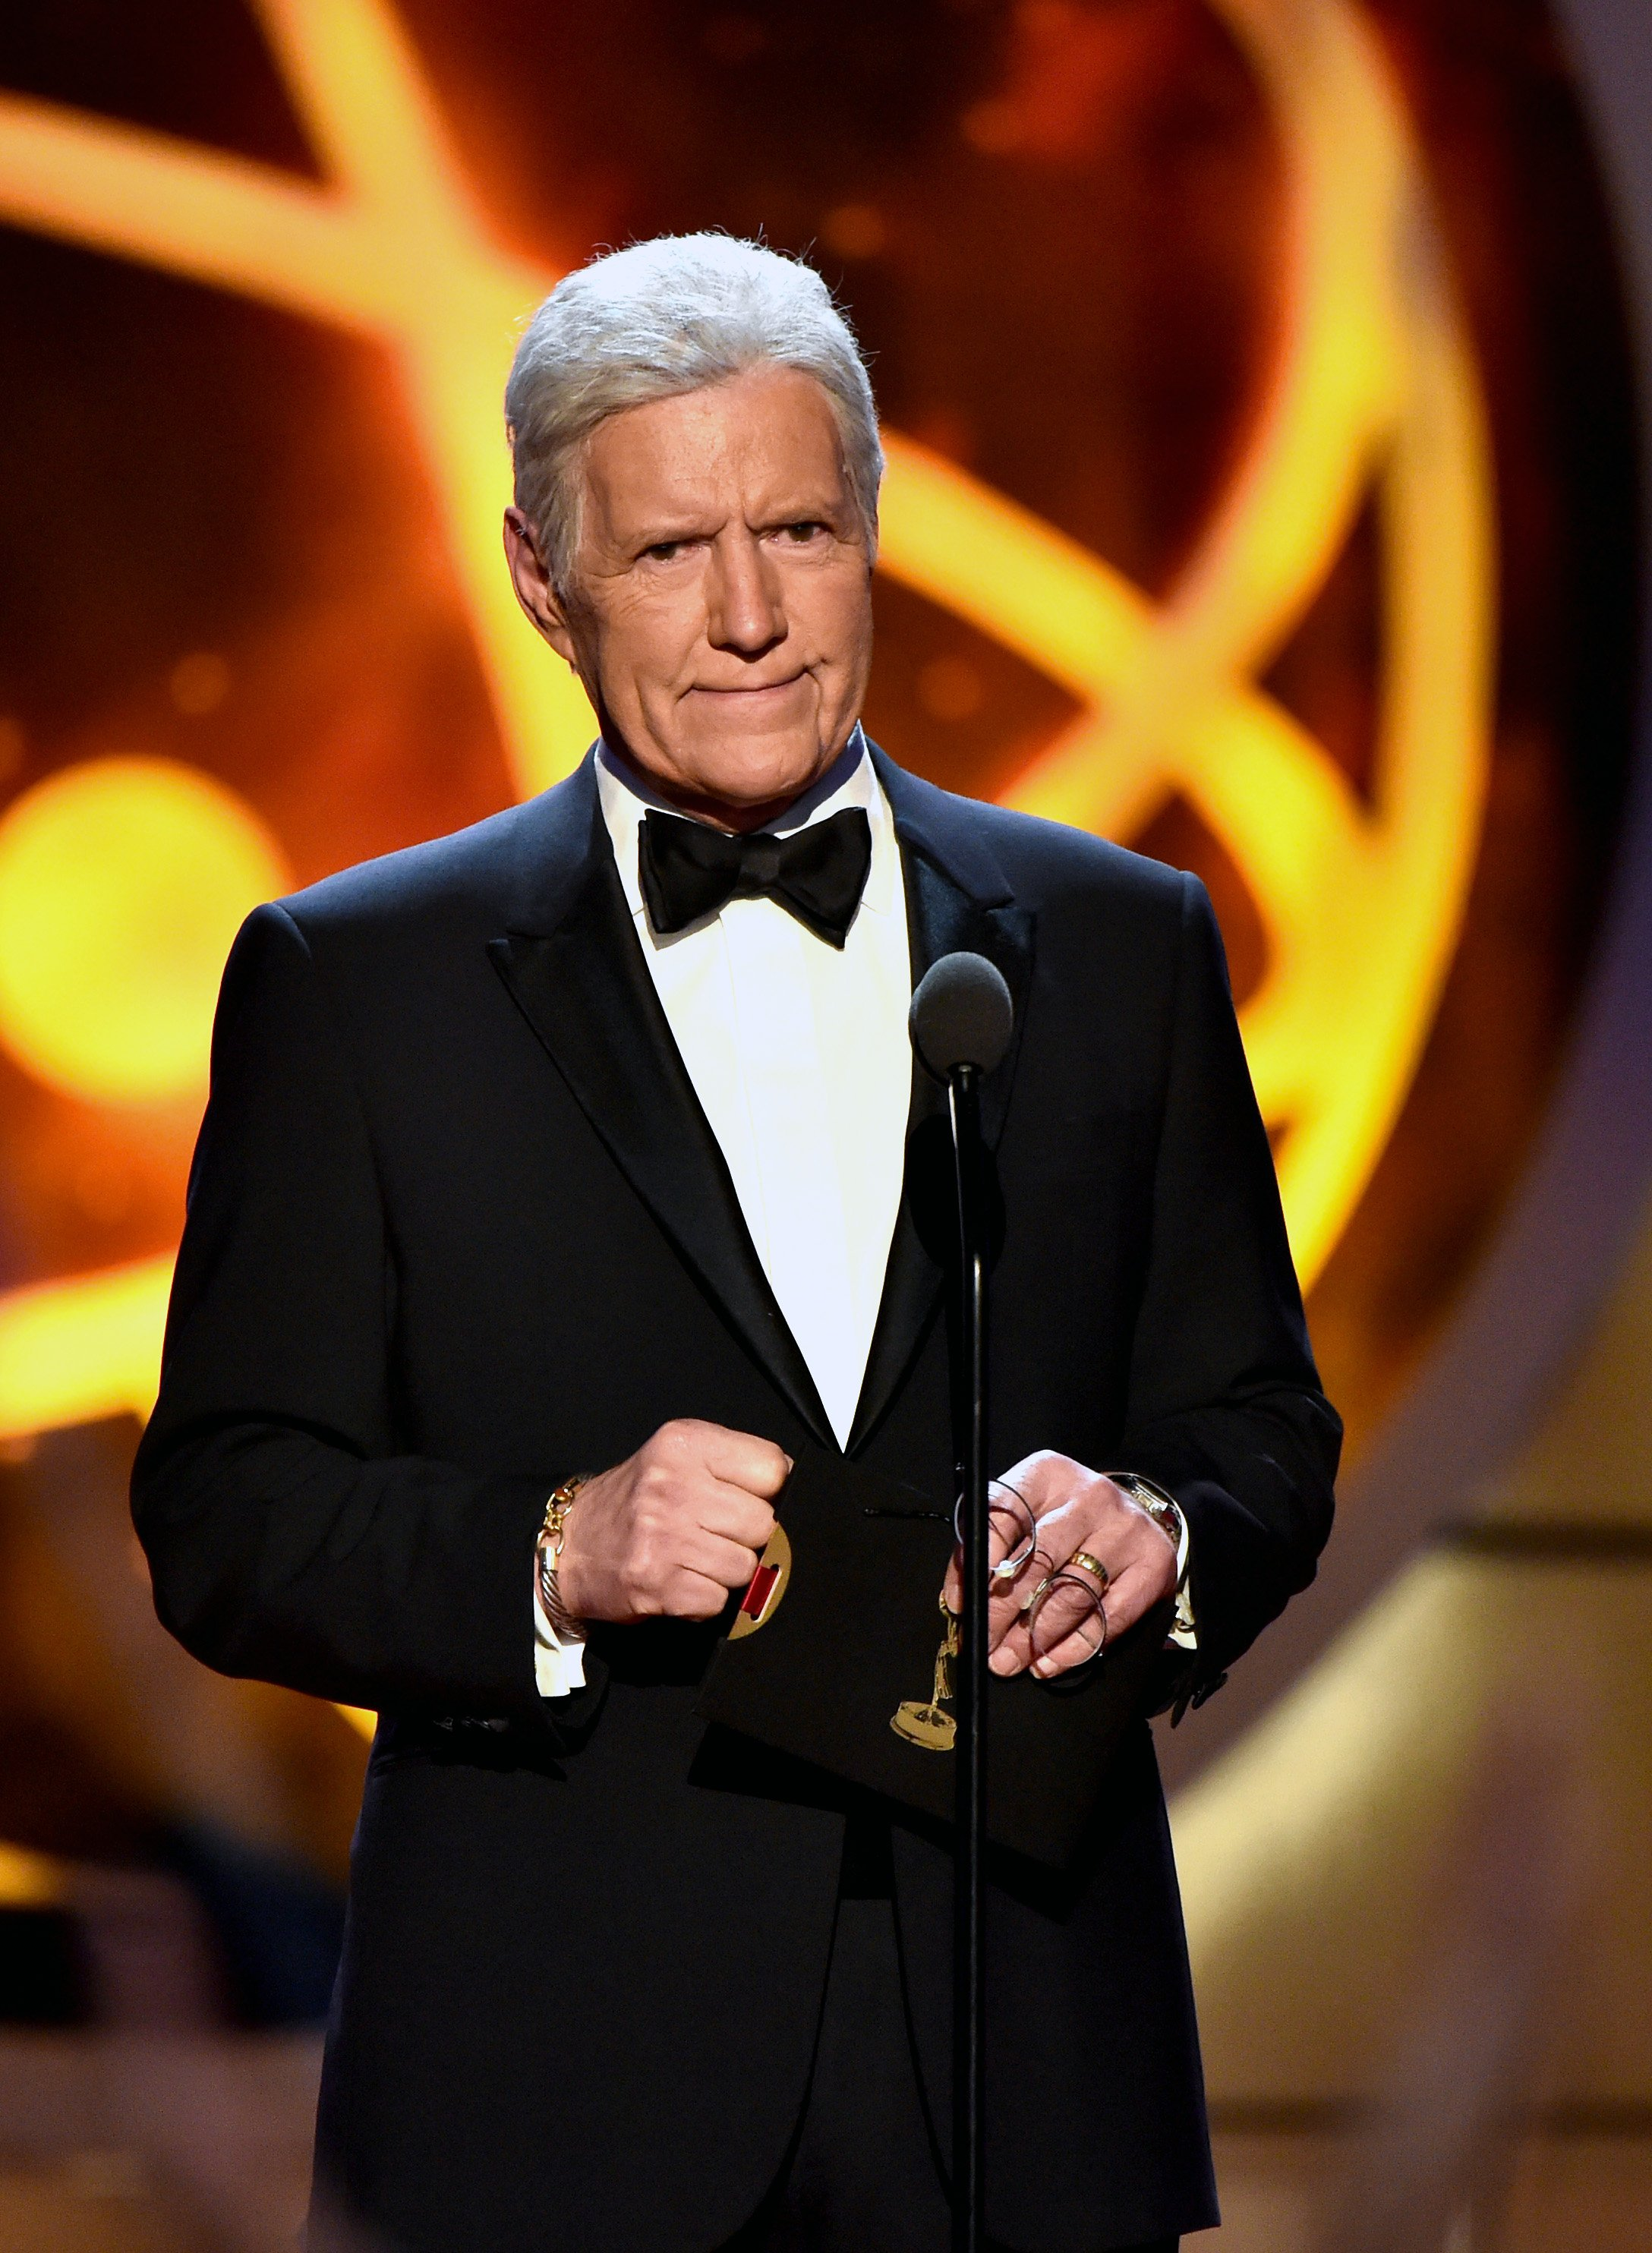 Alex Trebek attend the 46th annual Daytime Emmy Awards on May 05, 2019, in Pasadena, California. | Photo: Getty Images